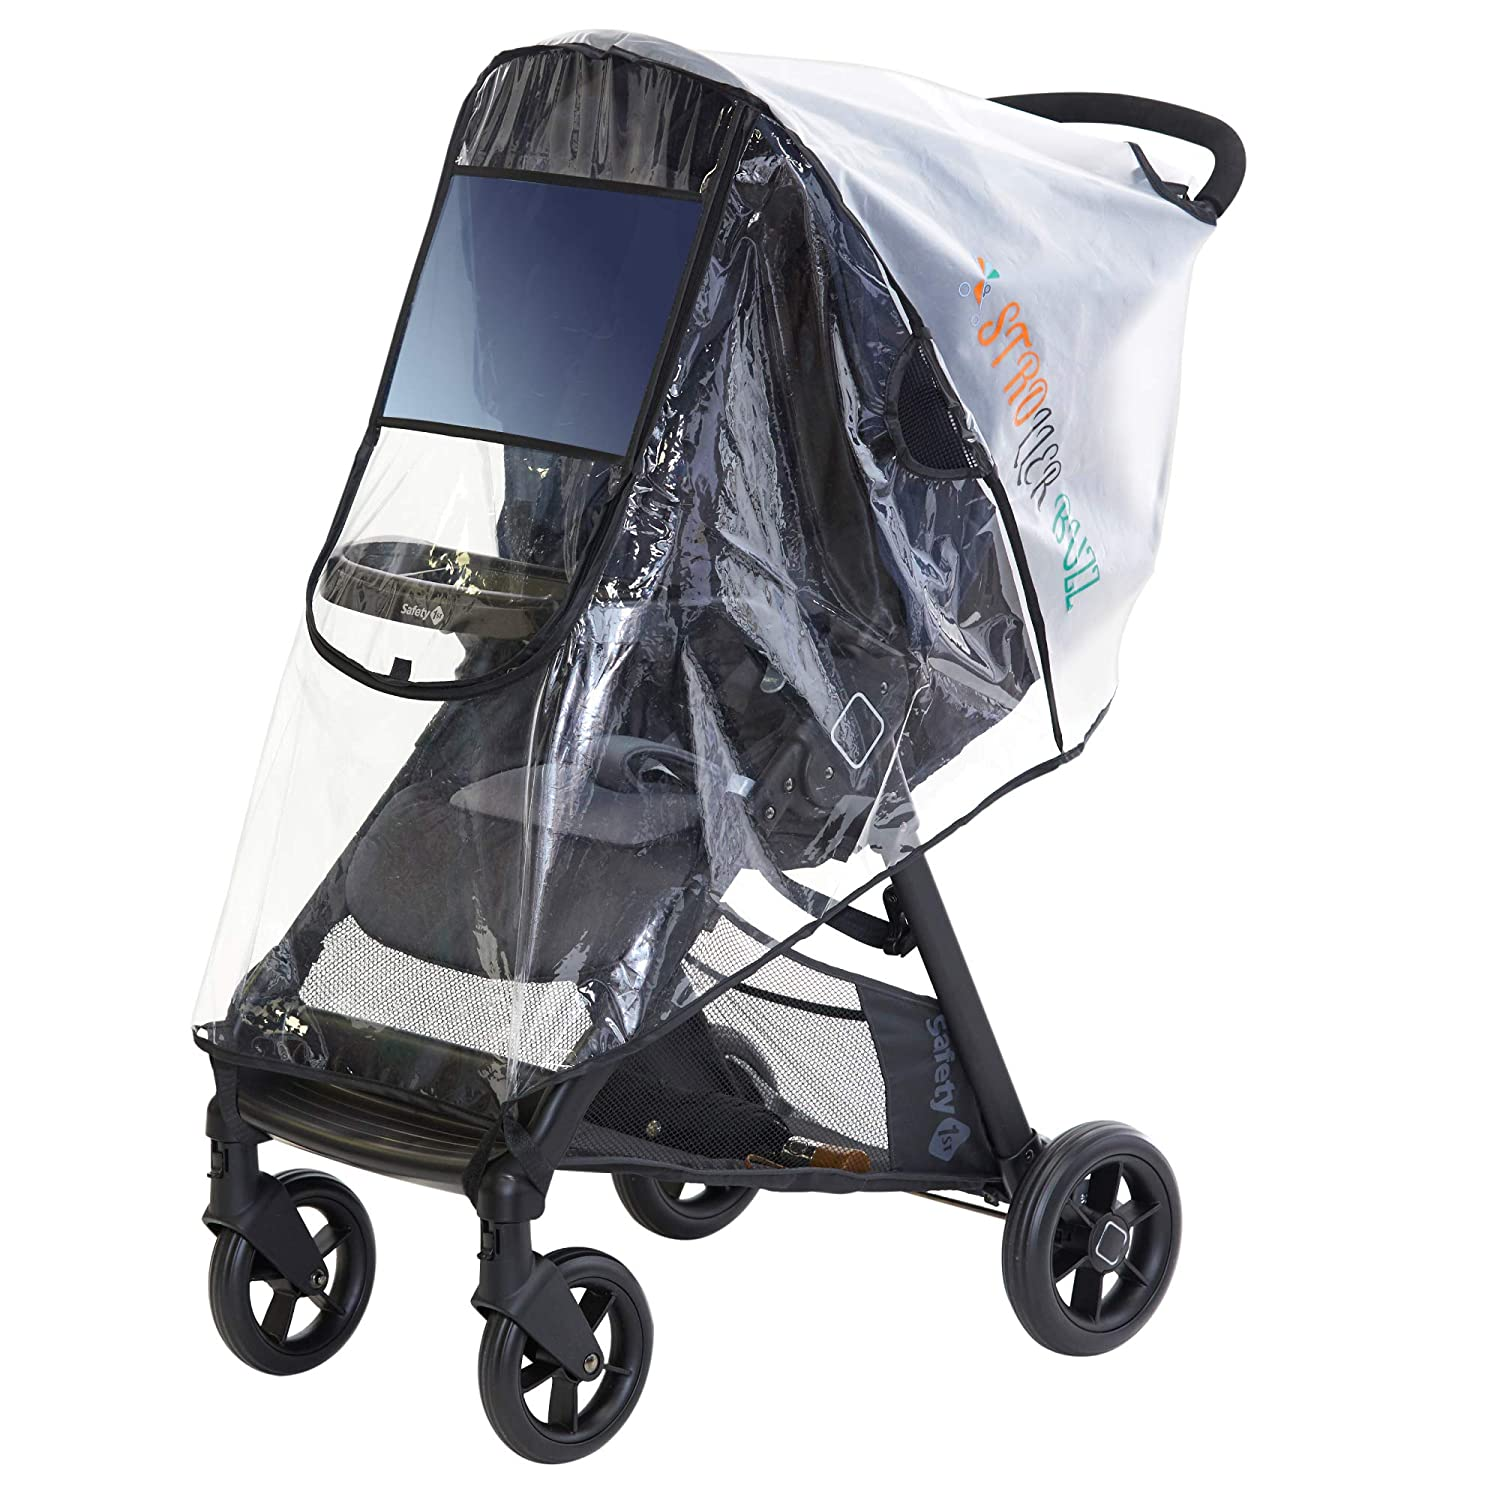 ZOEON Universal Rain Cover for Baby Stroller Weather Shield for Pushchair Stroller Buggy Pram